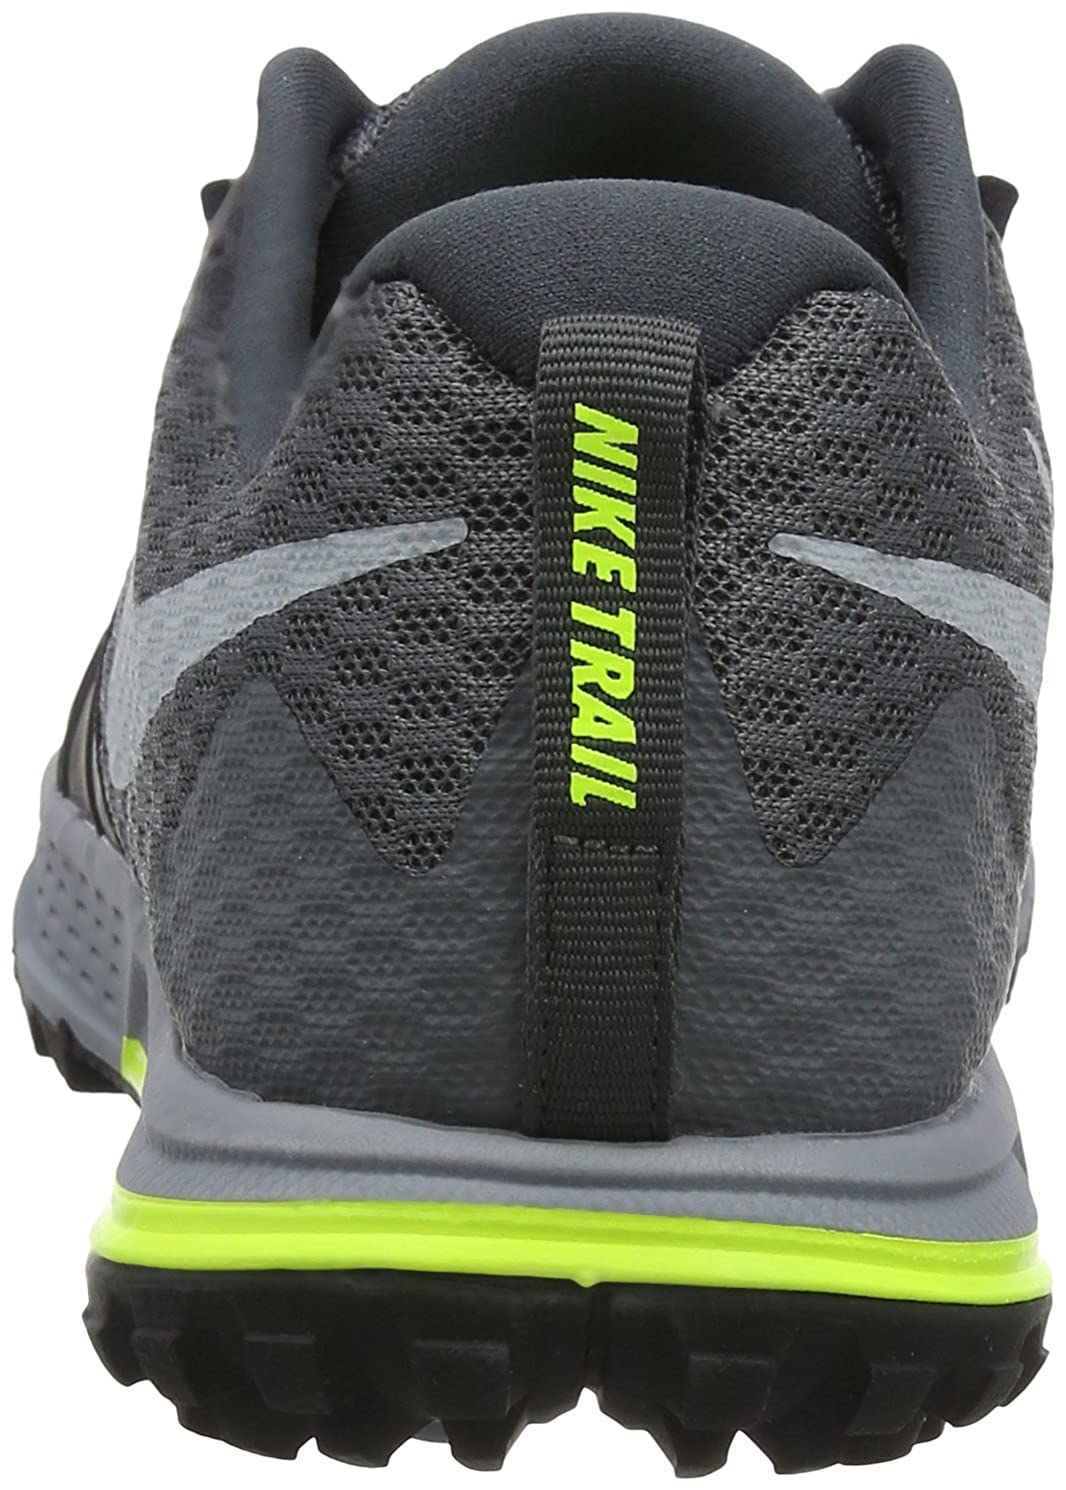 half off 71bee a781b Nike Air Zoom Wildhorse 4, Scarpe da Trail Running Uomo, Grigio (Dark Wolf  Grey Black Stealth 001), 38.5 EU  Amazon.it  Scarpe e borse